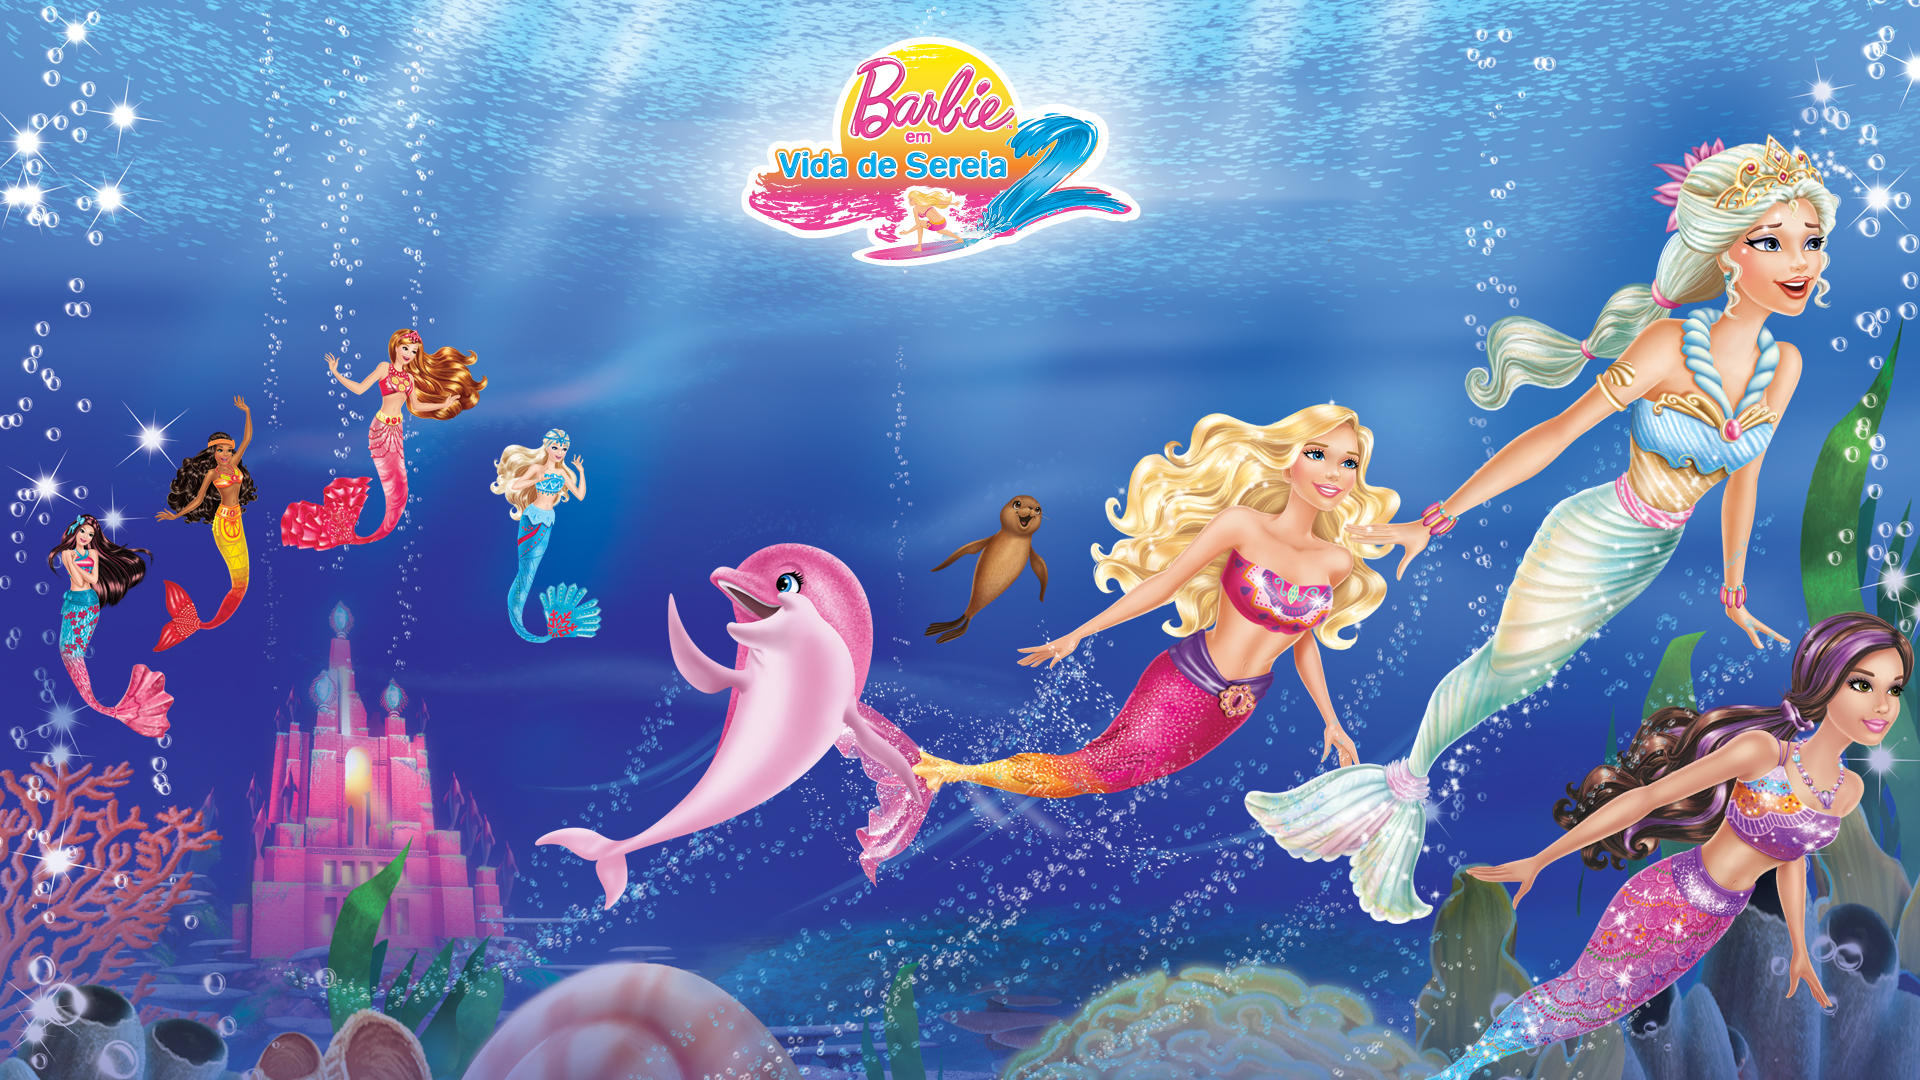 Barbie Princess Images Barbie Mermaid Tale 2 HD Wallpaper